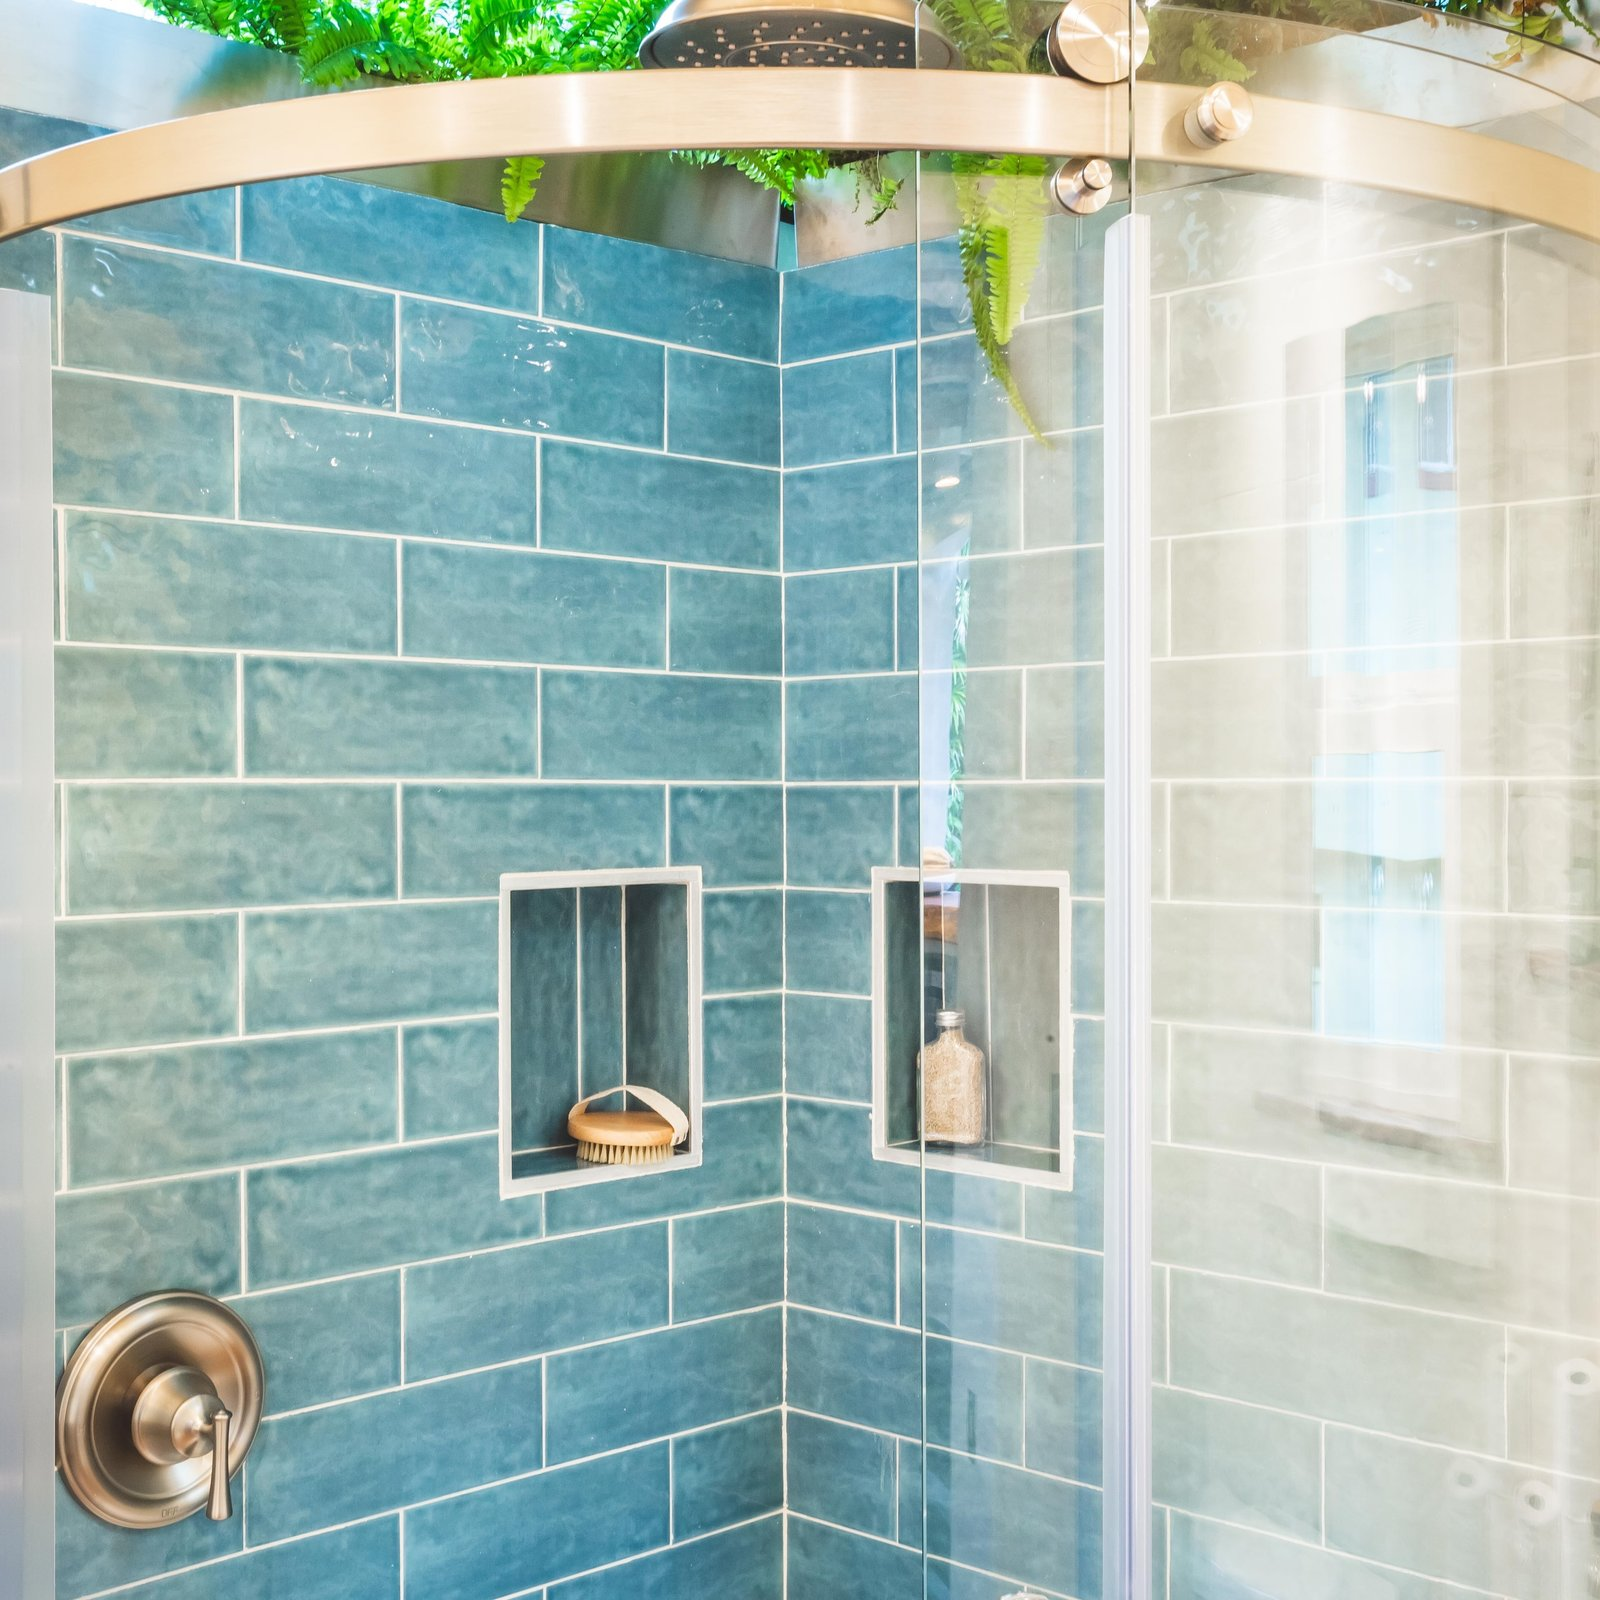 Oasis Tiny Home blue-tiled shower with skylight